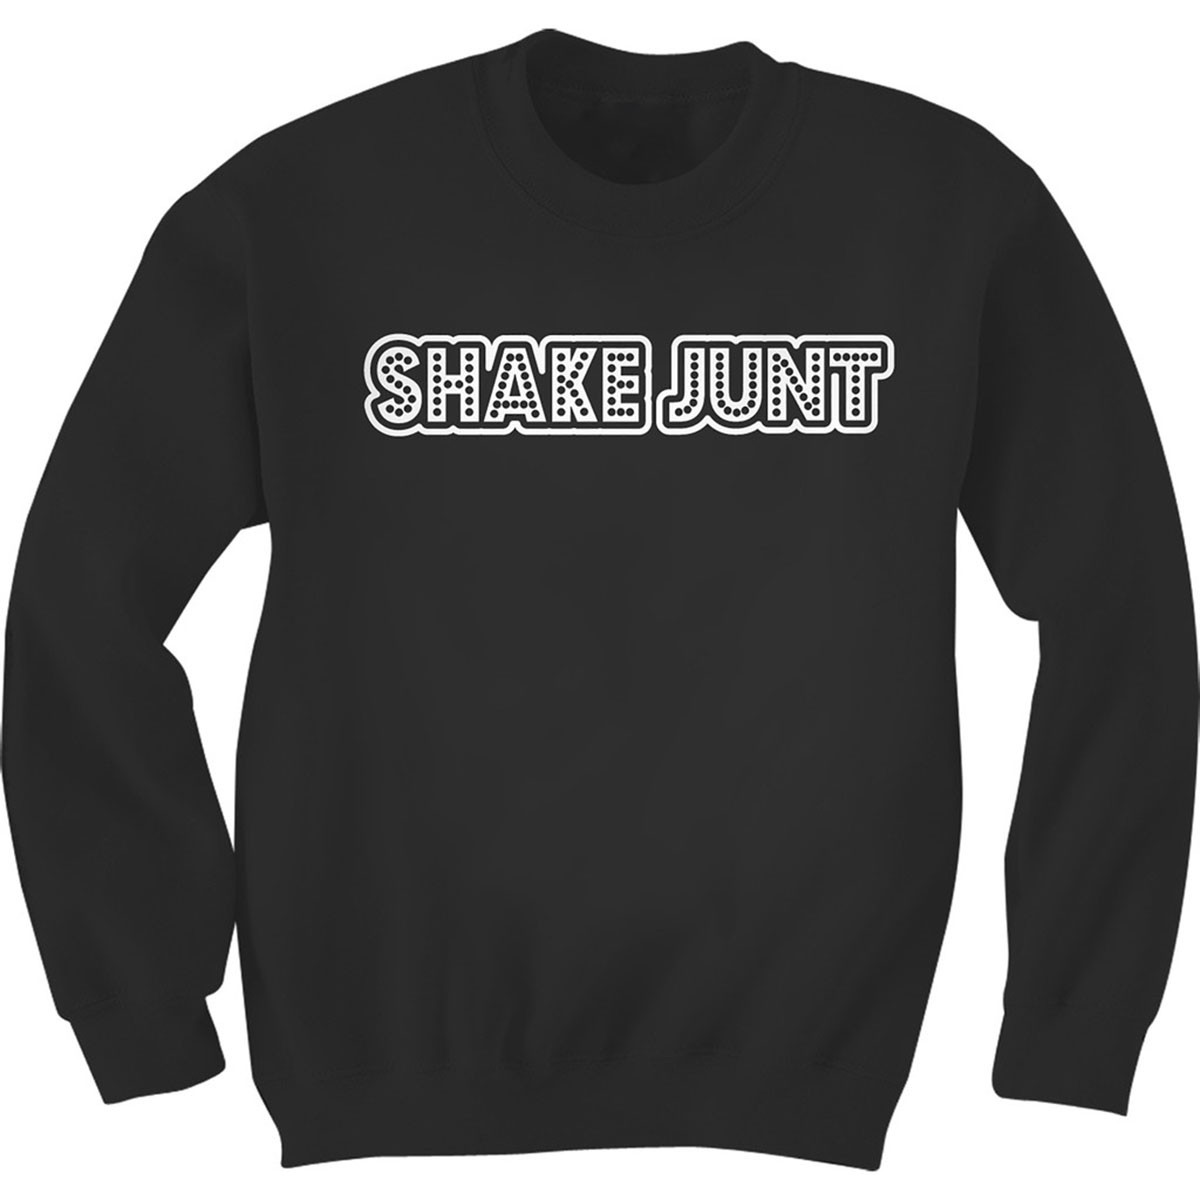 Shake Junt Stretch Logo Sweatshirt - Black/White